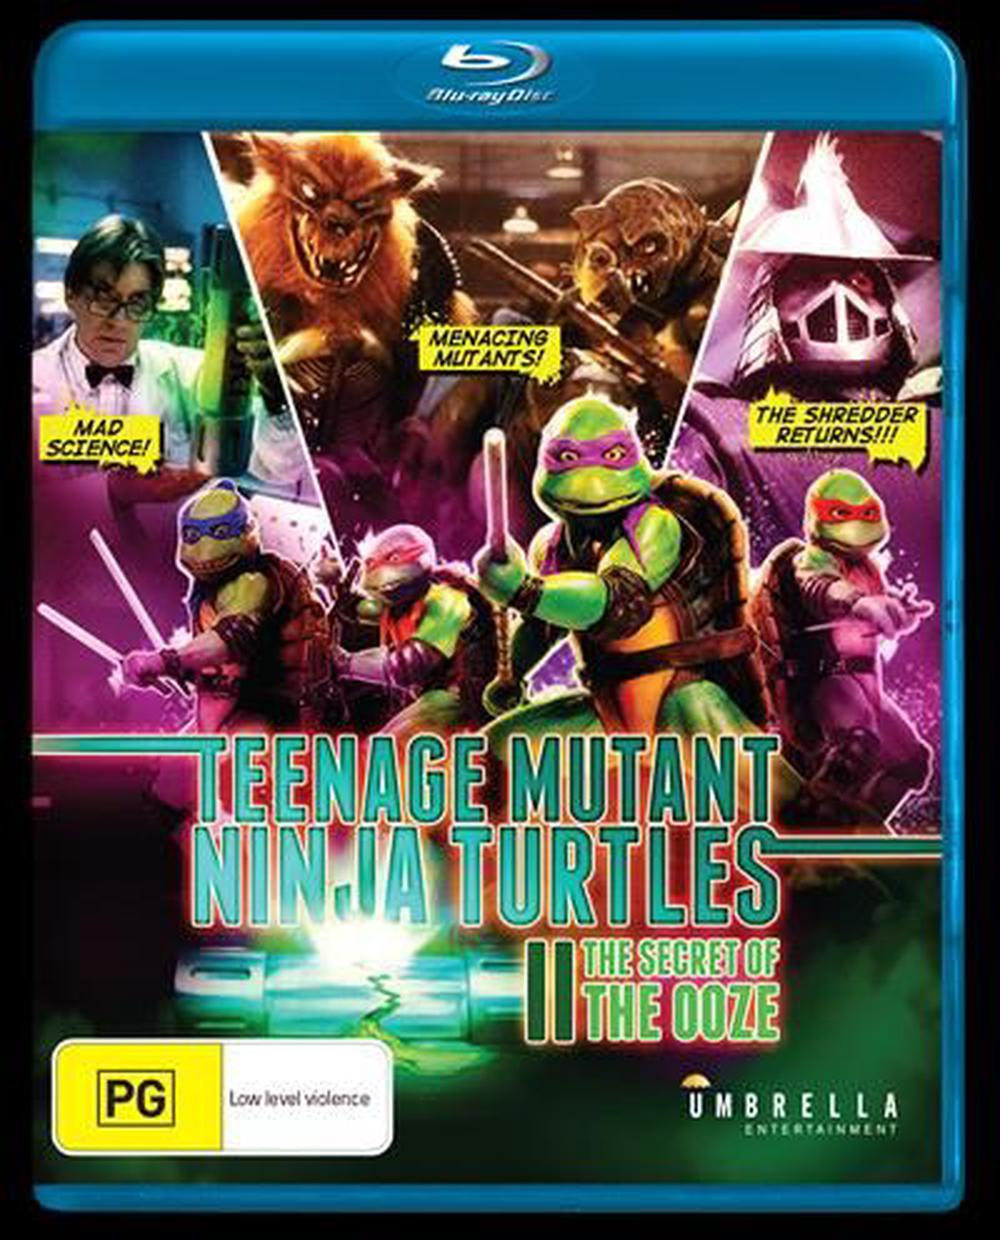 Teenage Mutant Ninja Turtles 2 Secret Of The Ooze The Blu Ray Buy Online At The Nile